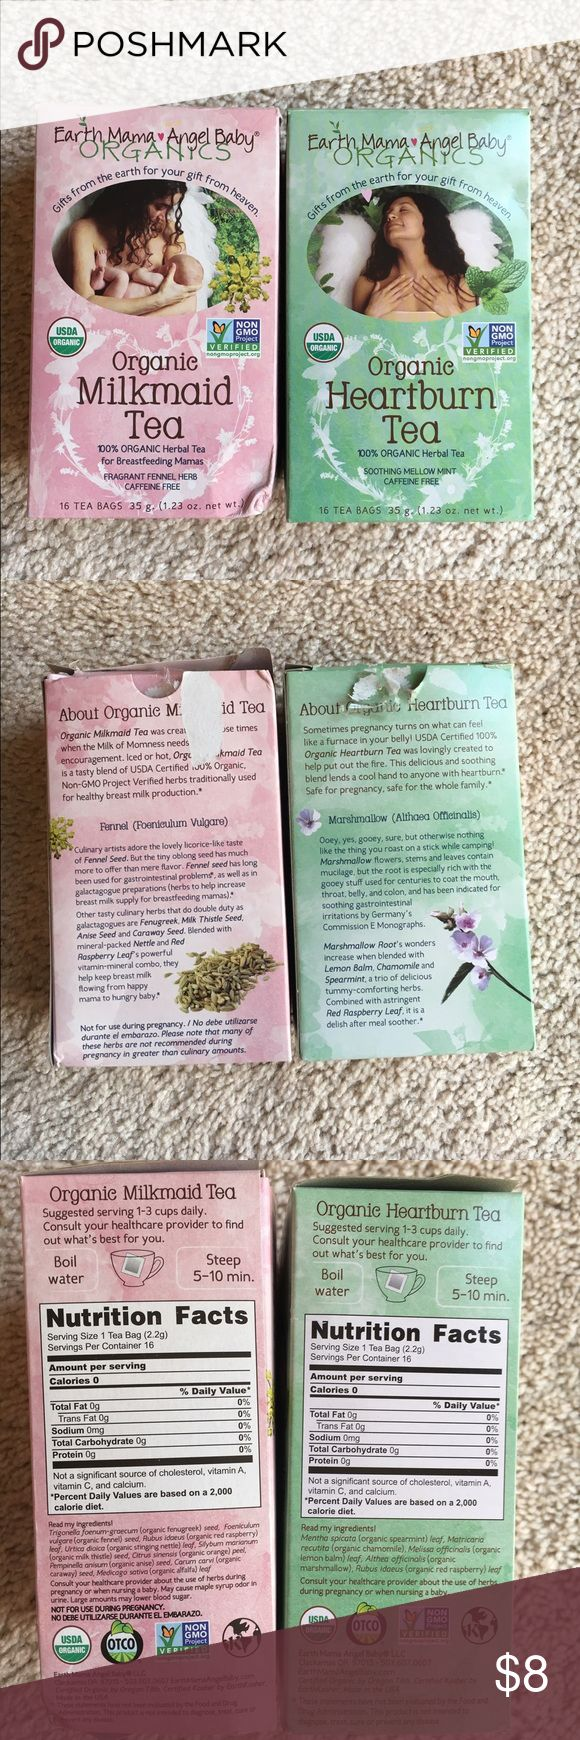 Earth mama angel baby Organics This tea helped a lot during and after pregnancy. The milkmaid tea has 4 tea bags left & heartburn tea has 12 left ✨✨✨ earth mama angel baby organics Other